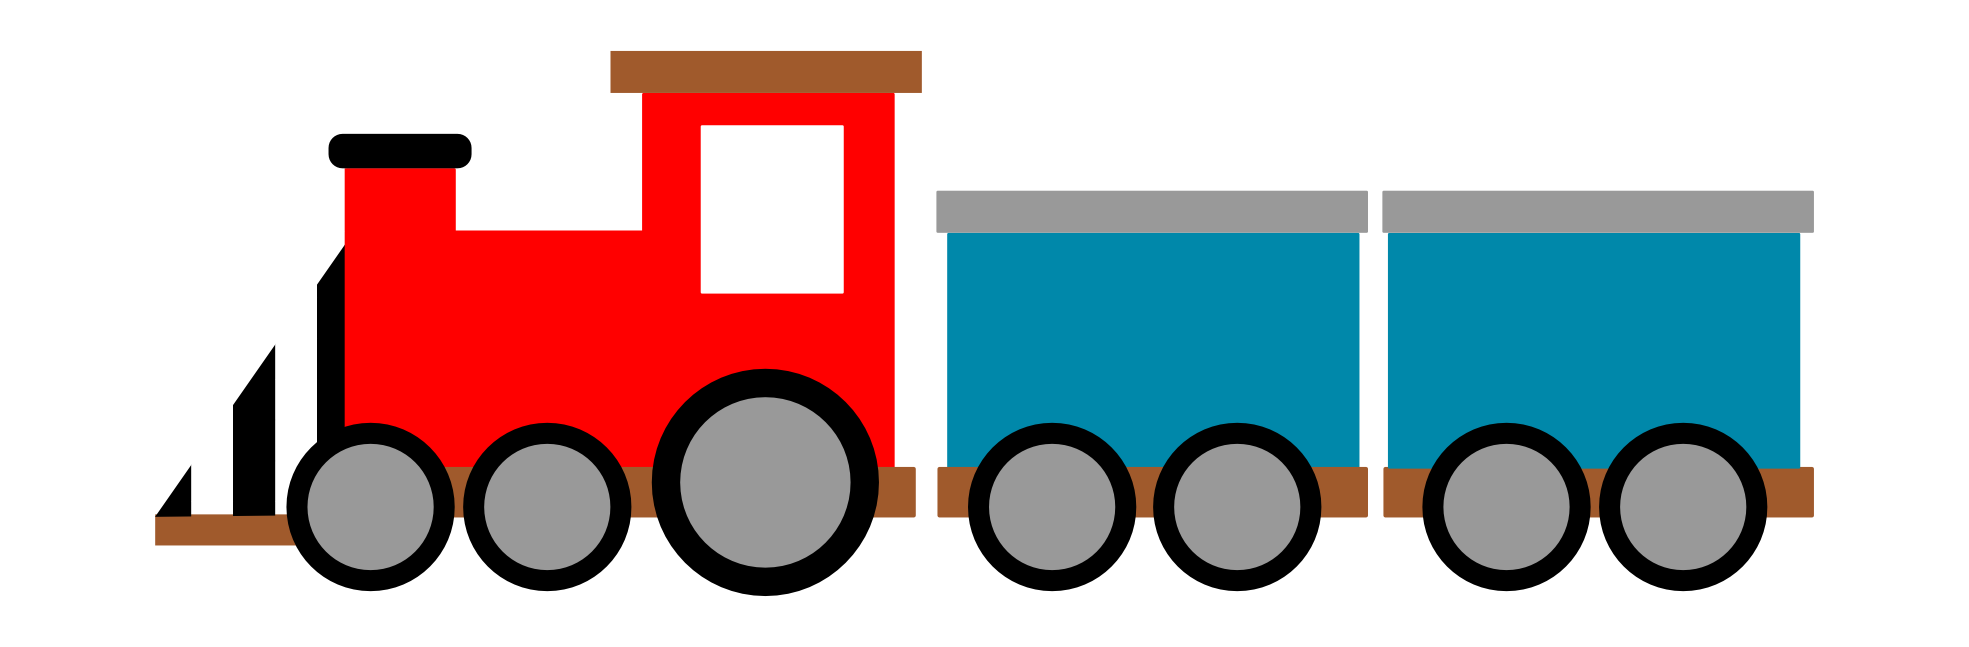 Track clipart toy train. Choo images image group